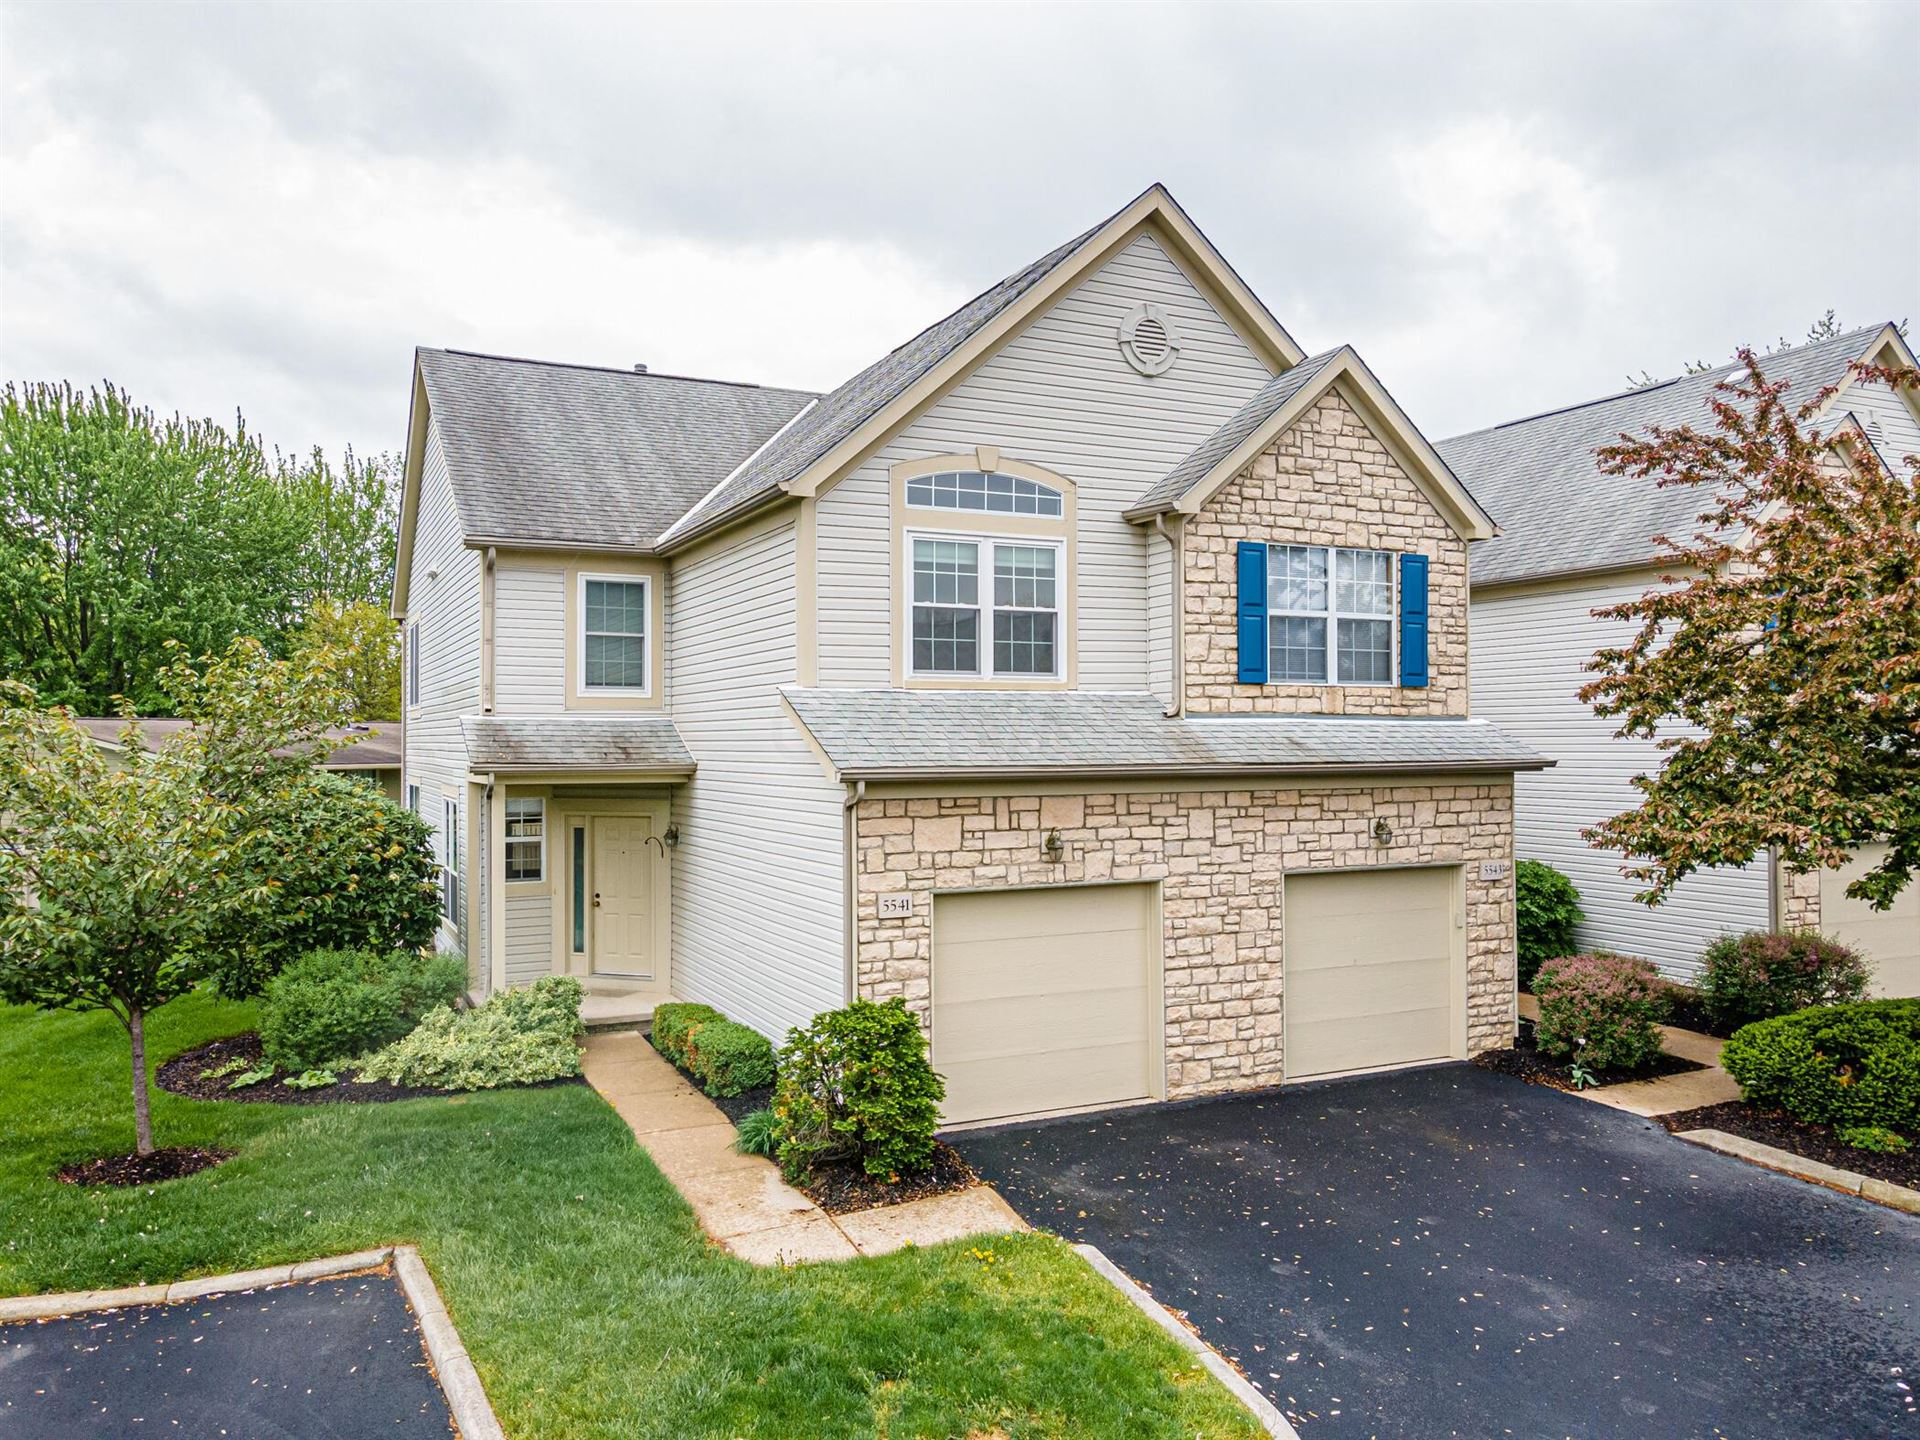 Photo for 5541 Village Crossing, Hilliard, OH 43026 (MLS # 221014354)